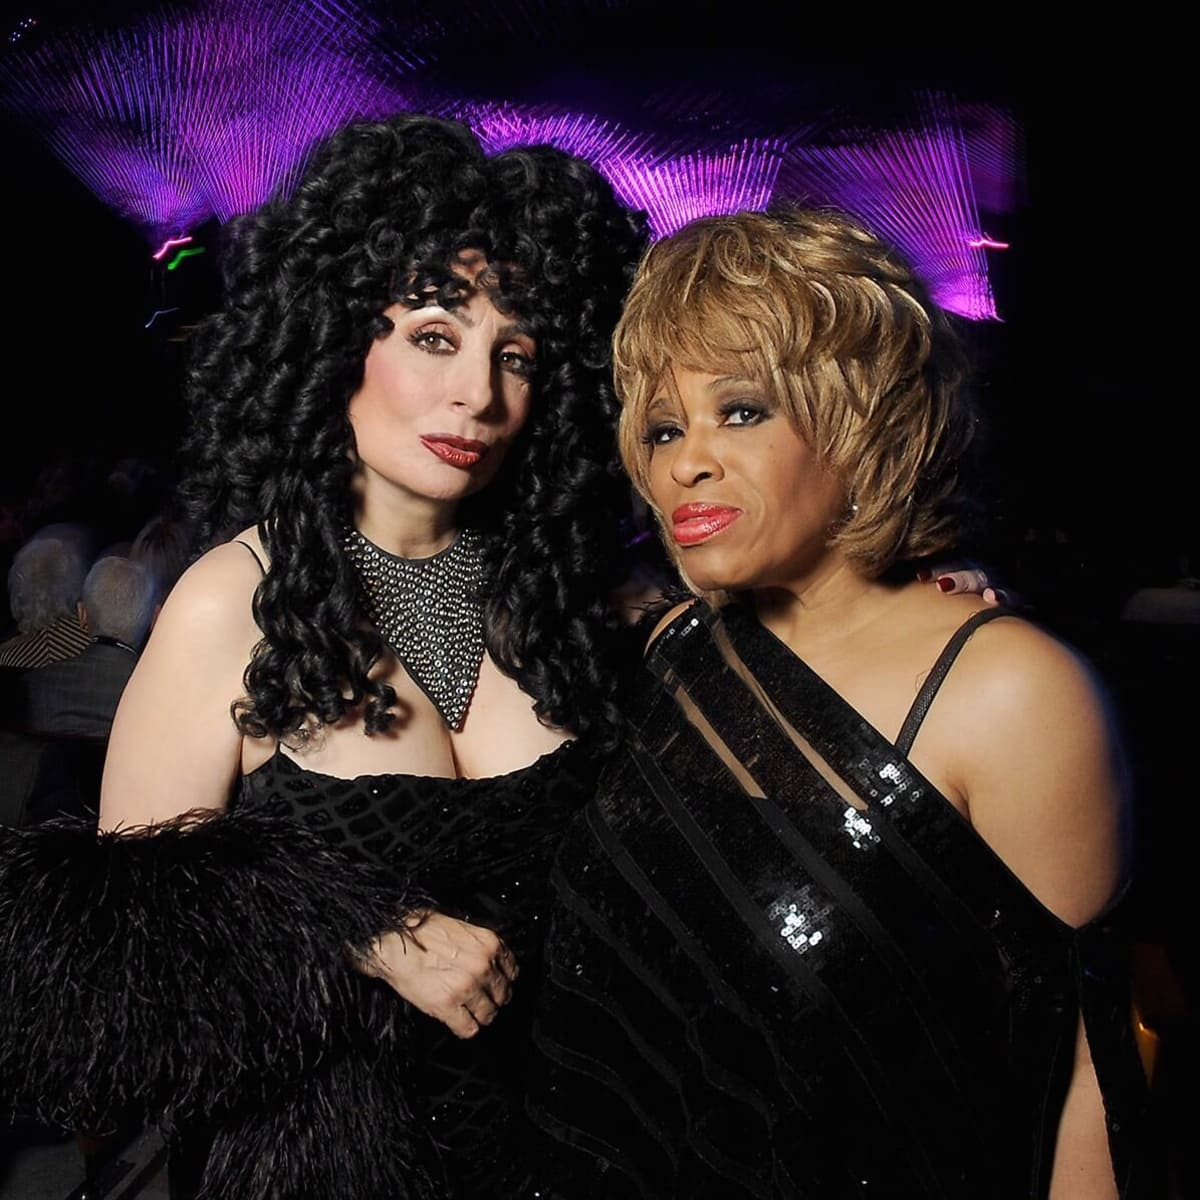 Smart Financial Centre impersonators Cher and Tina Turner